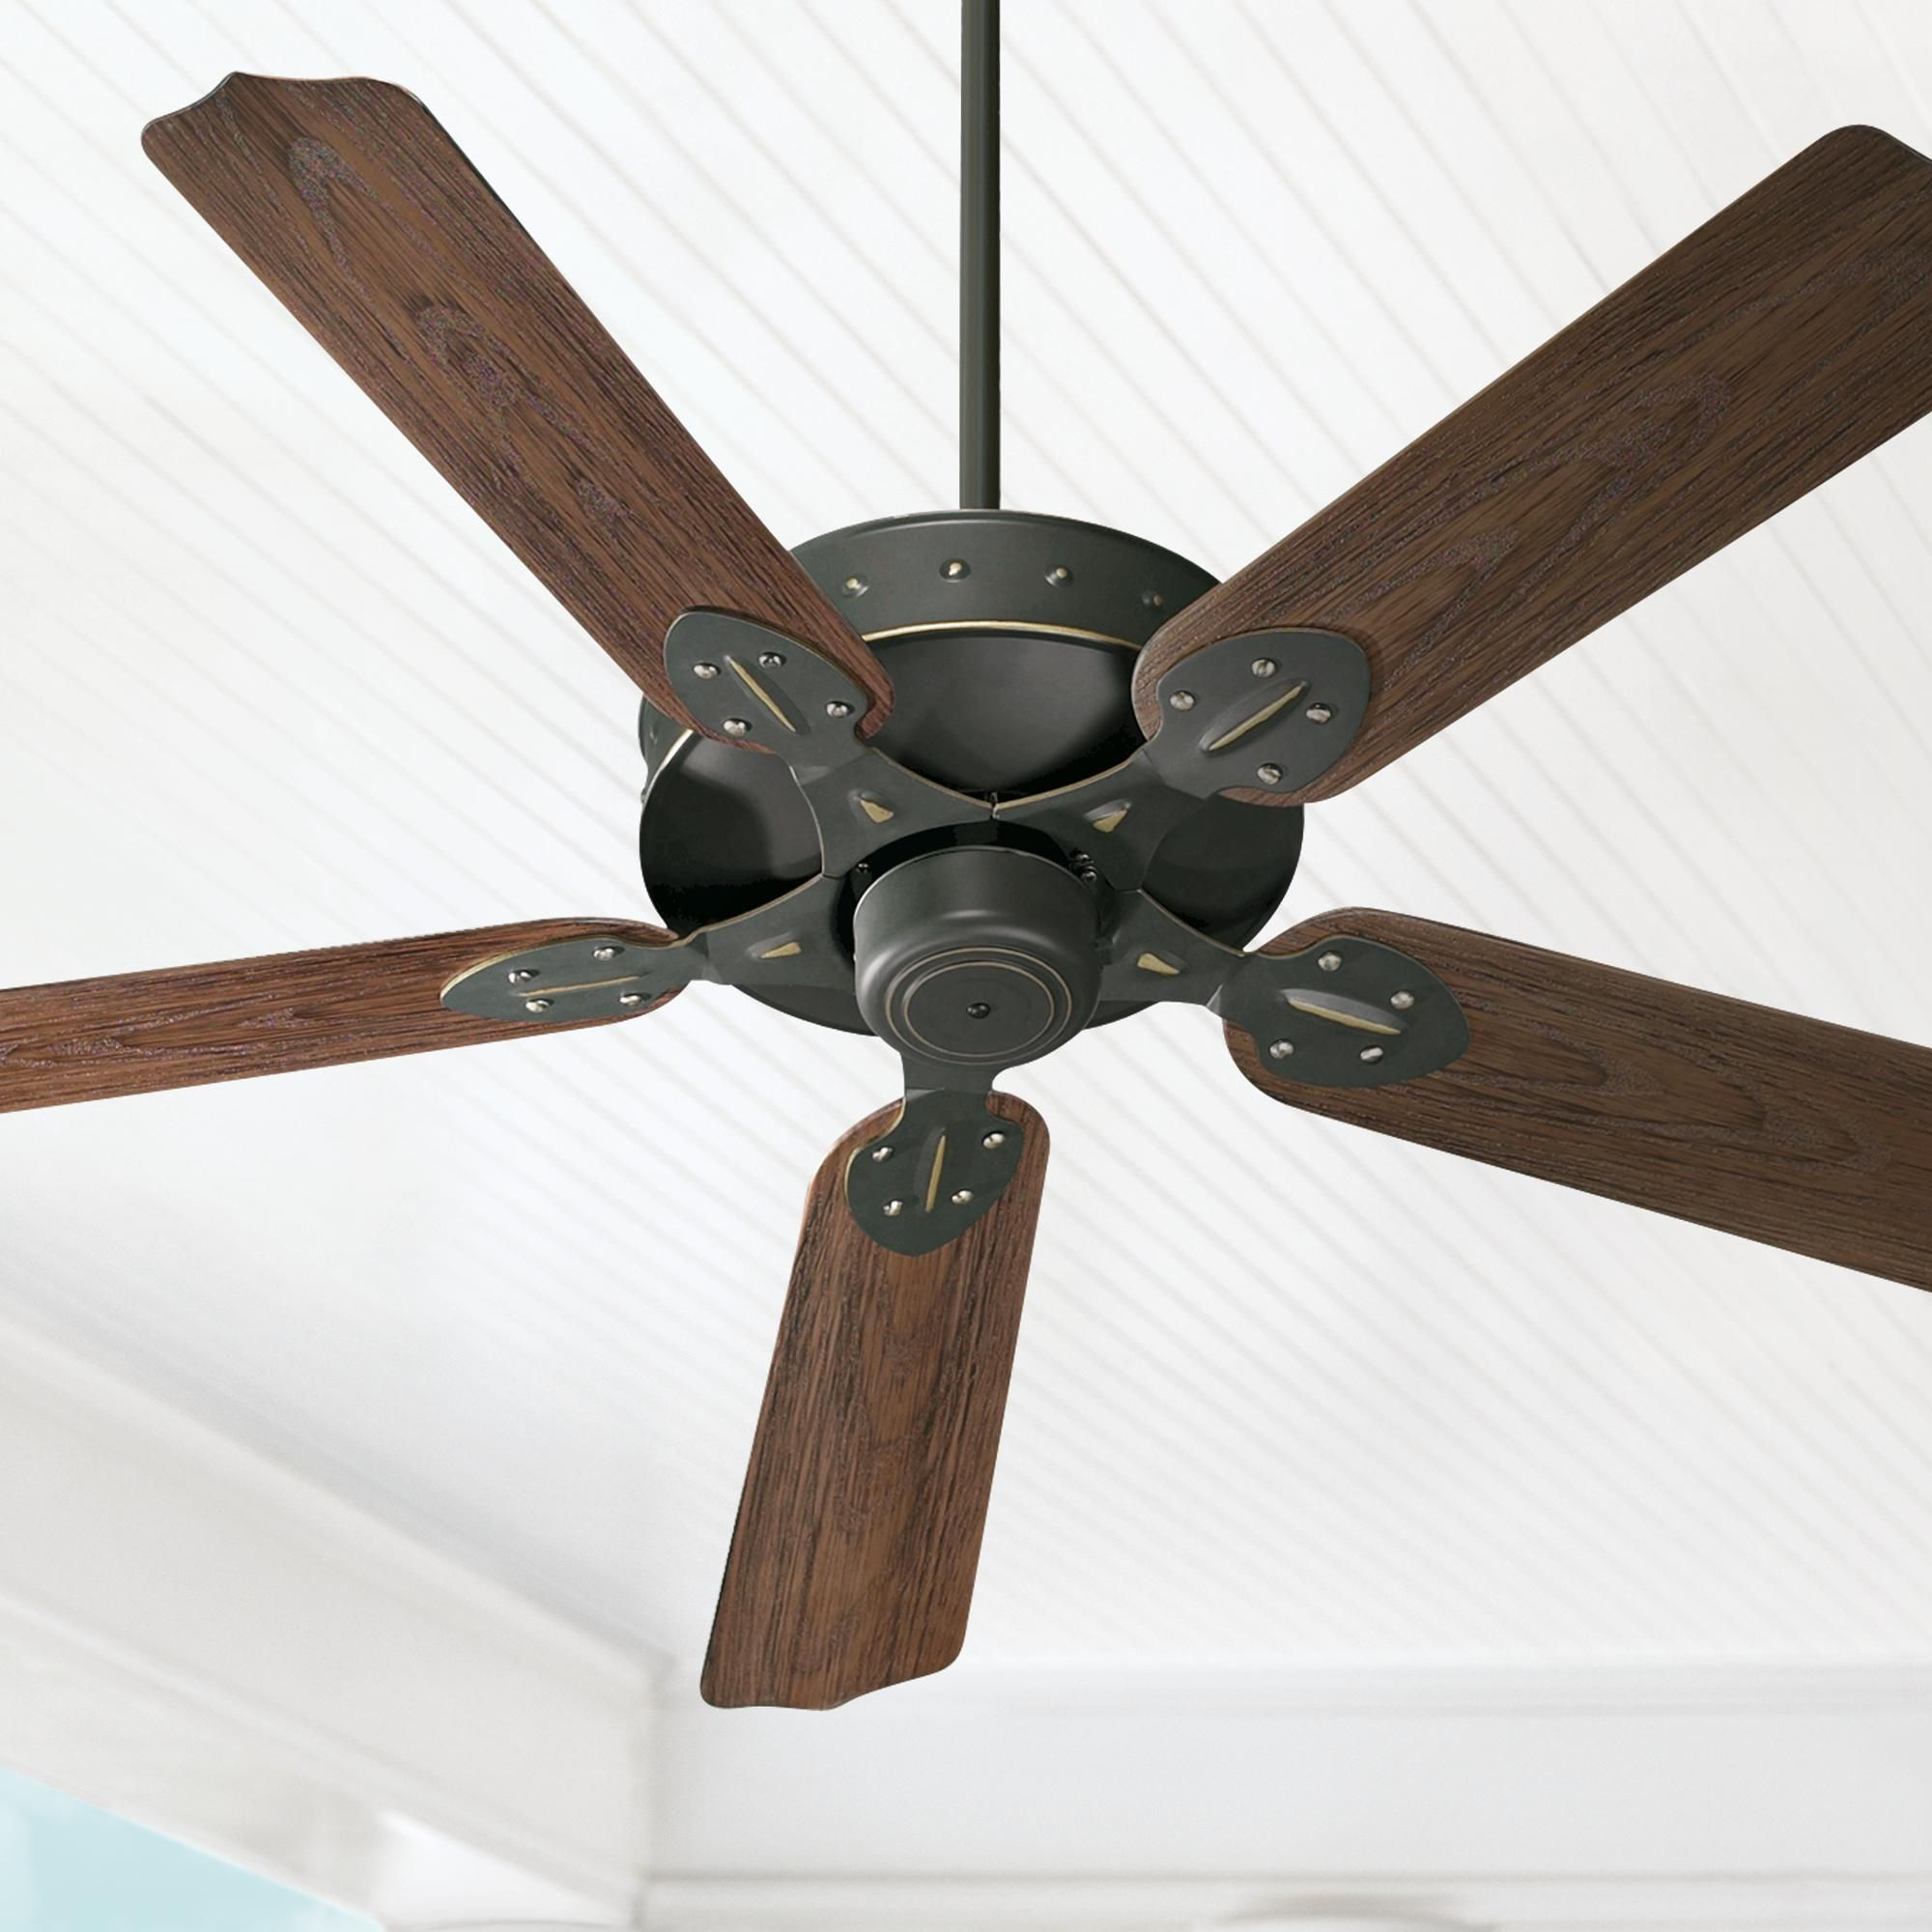 52 Inch Quorum Hudson Old World Patio Ceiling Fan In 2020 Rustic Ceiling Fan Ceiling Fan Outdoor Ceiling Fans